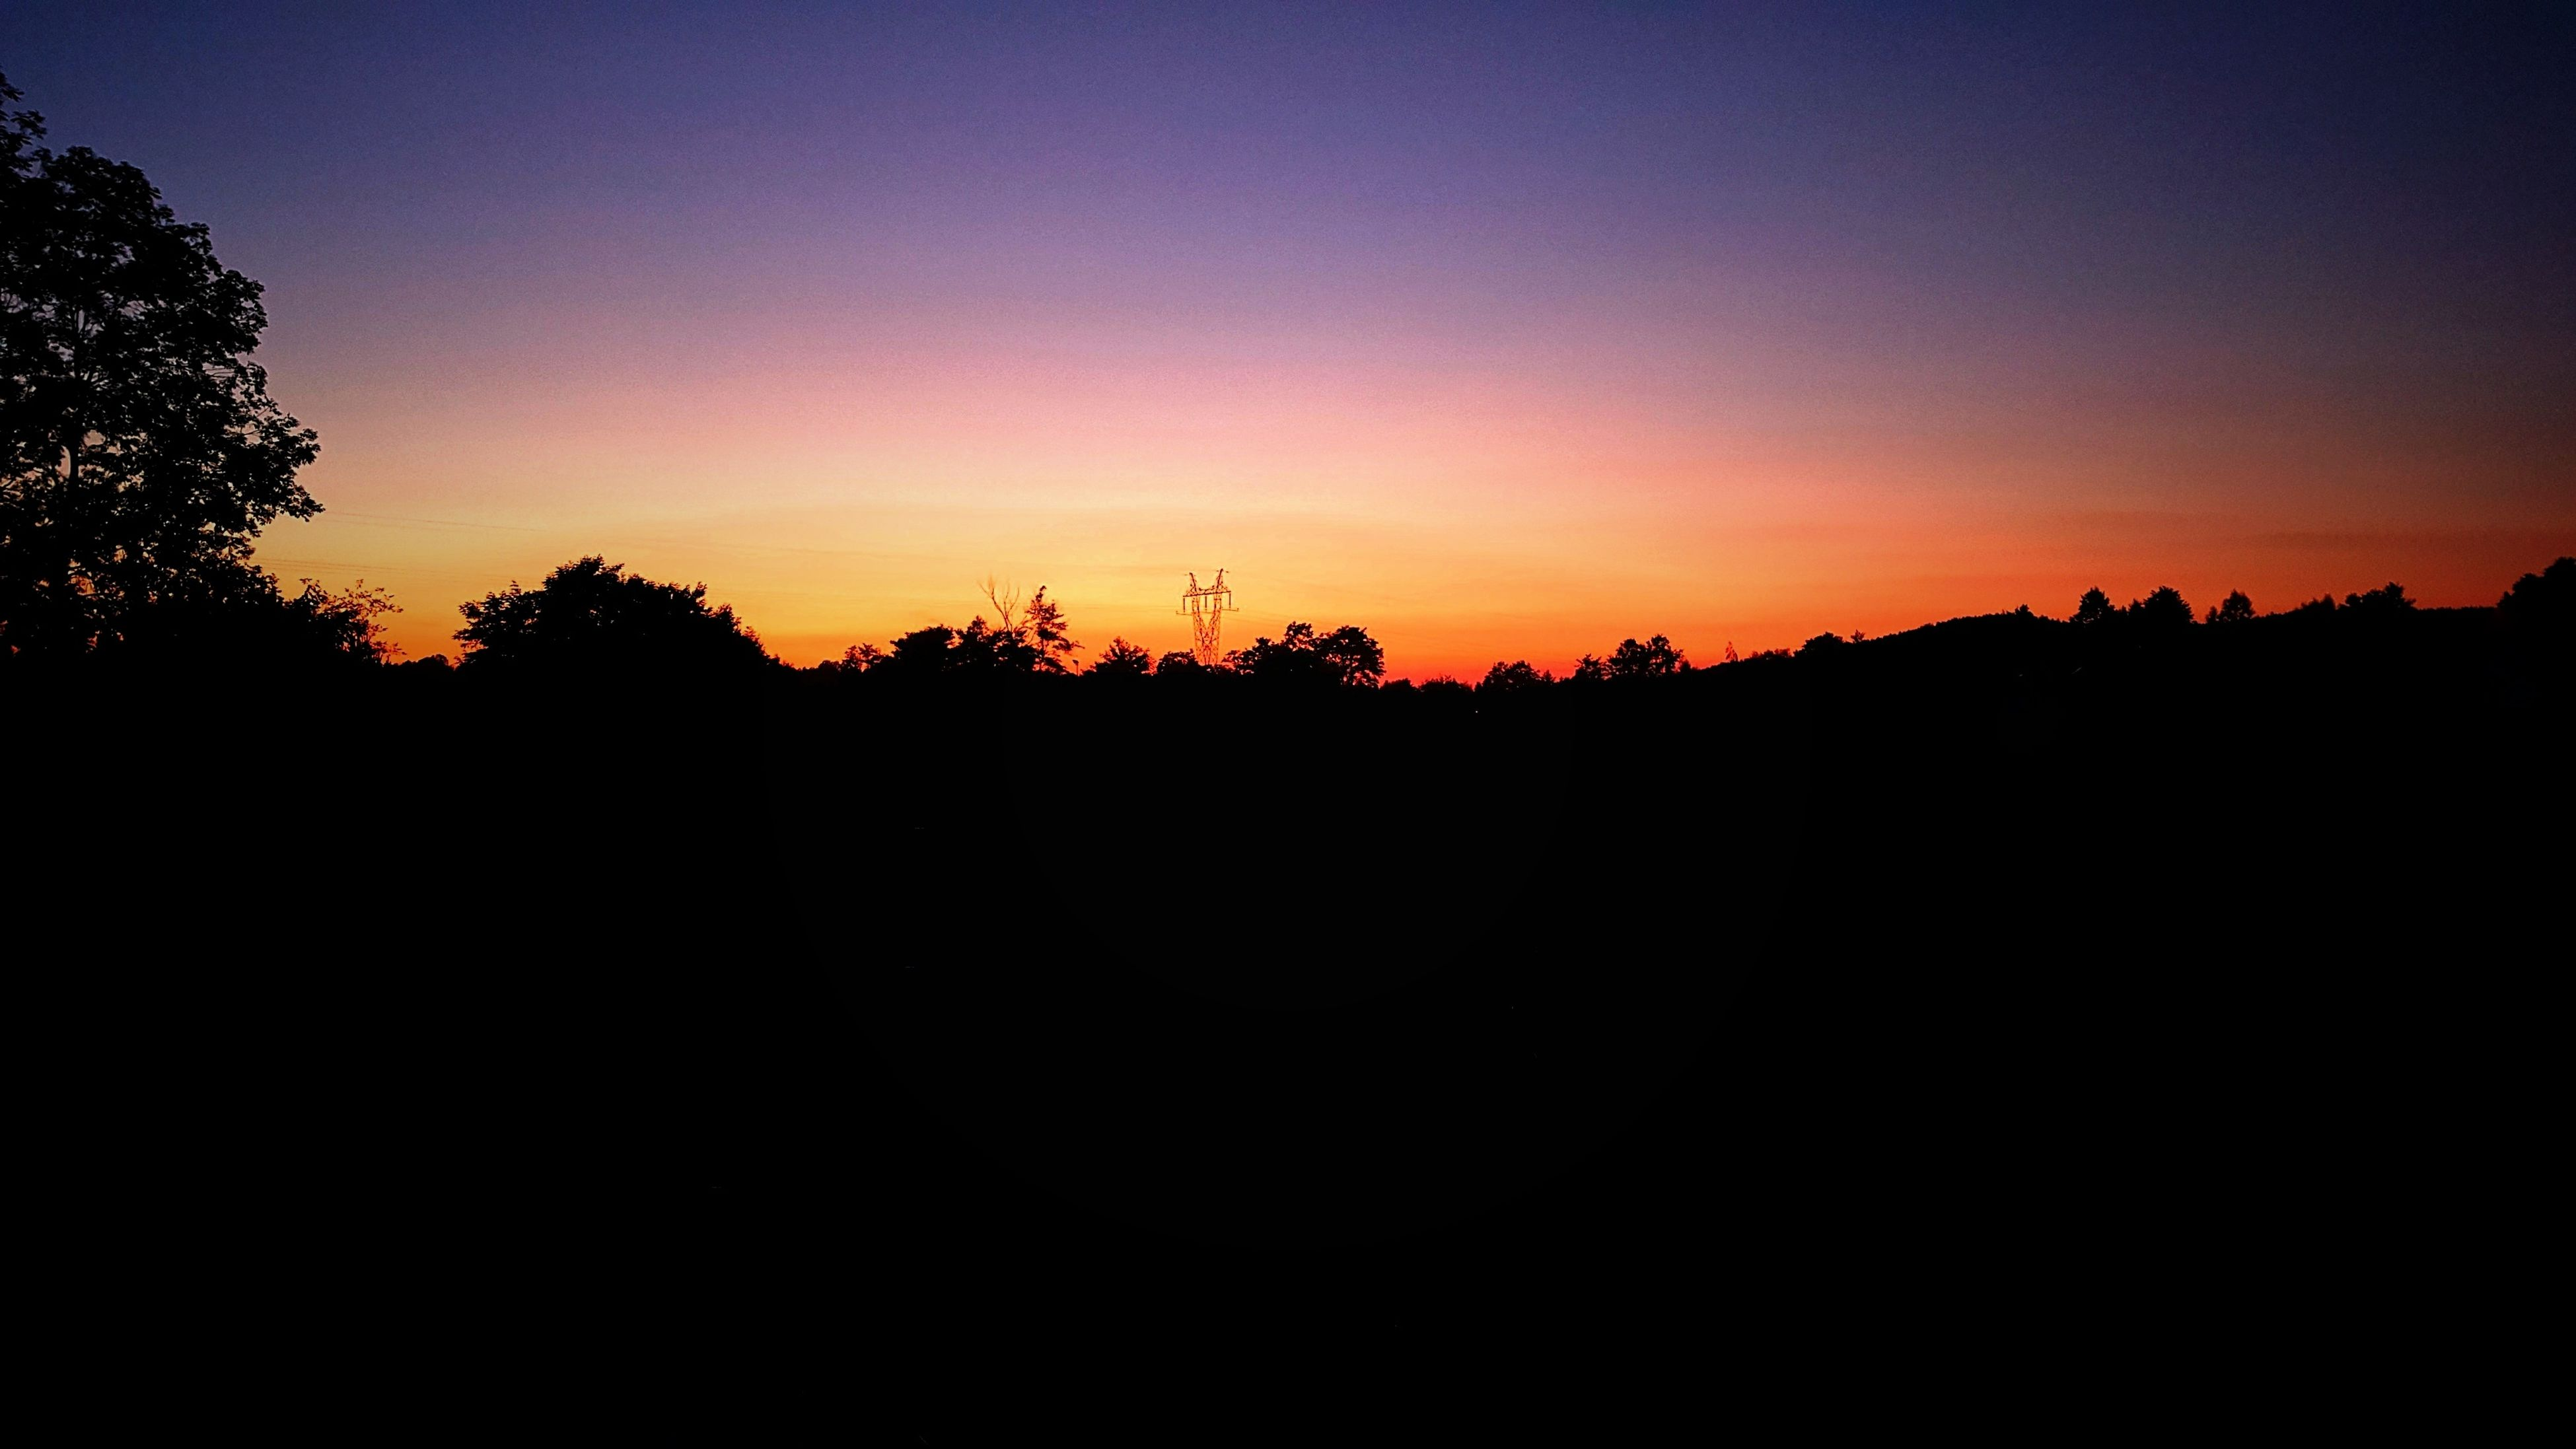 sunset, tree, beauty in nature, nature, silhouette, sky, orange color, scenics, idyllic, tranquility, tranquil scene, outdoors, growth, landscape, no people